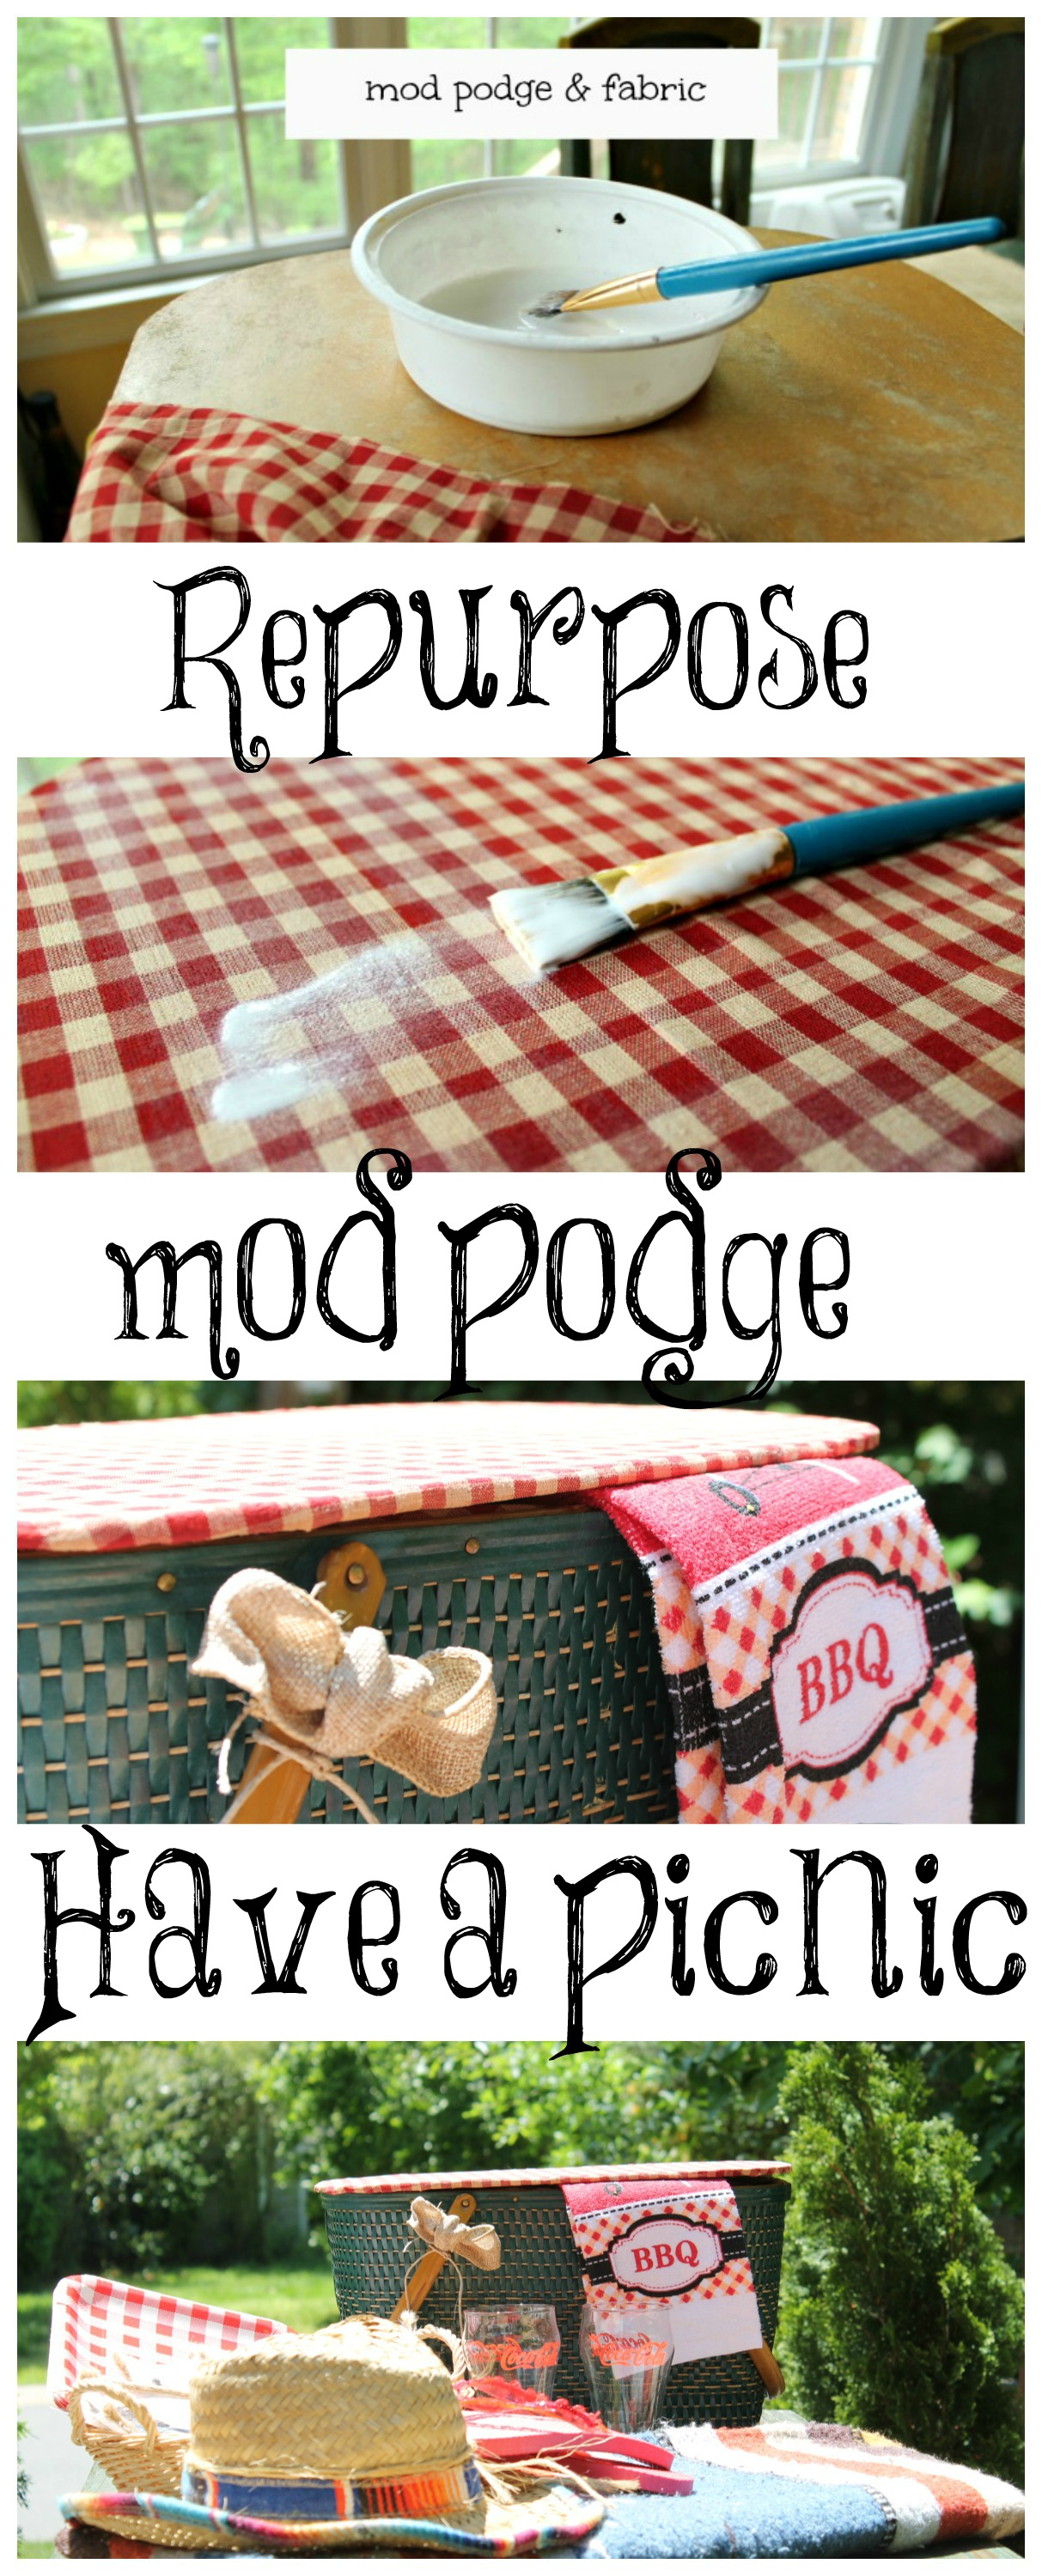 repurpose a vintage picnic basket